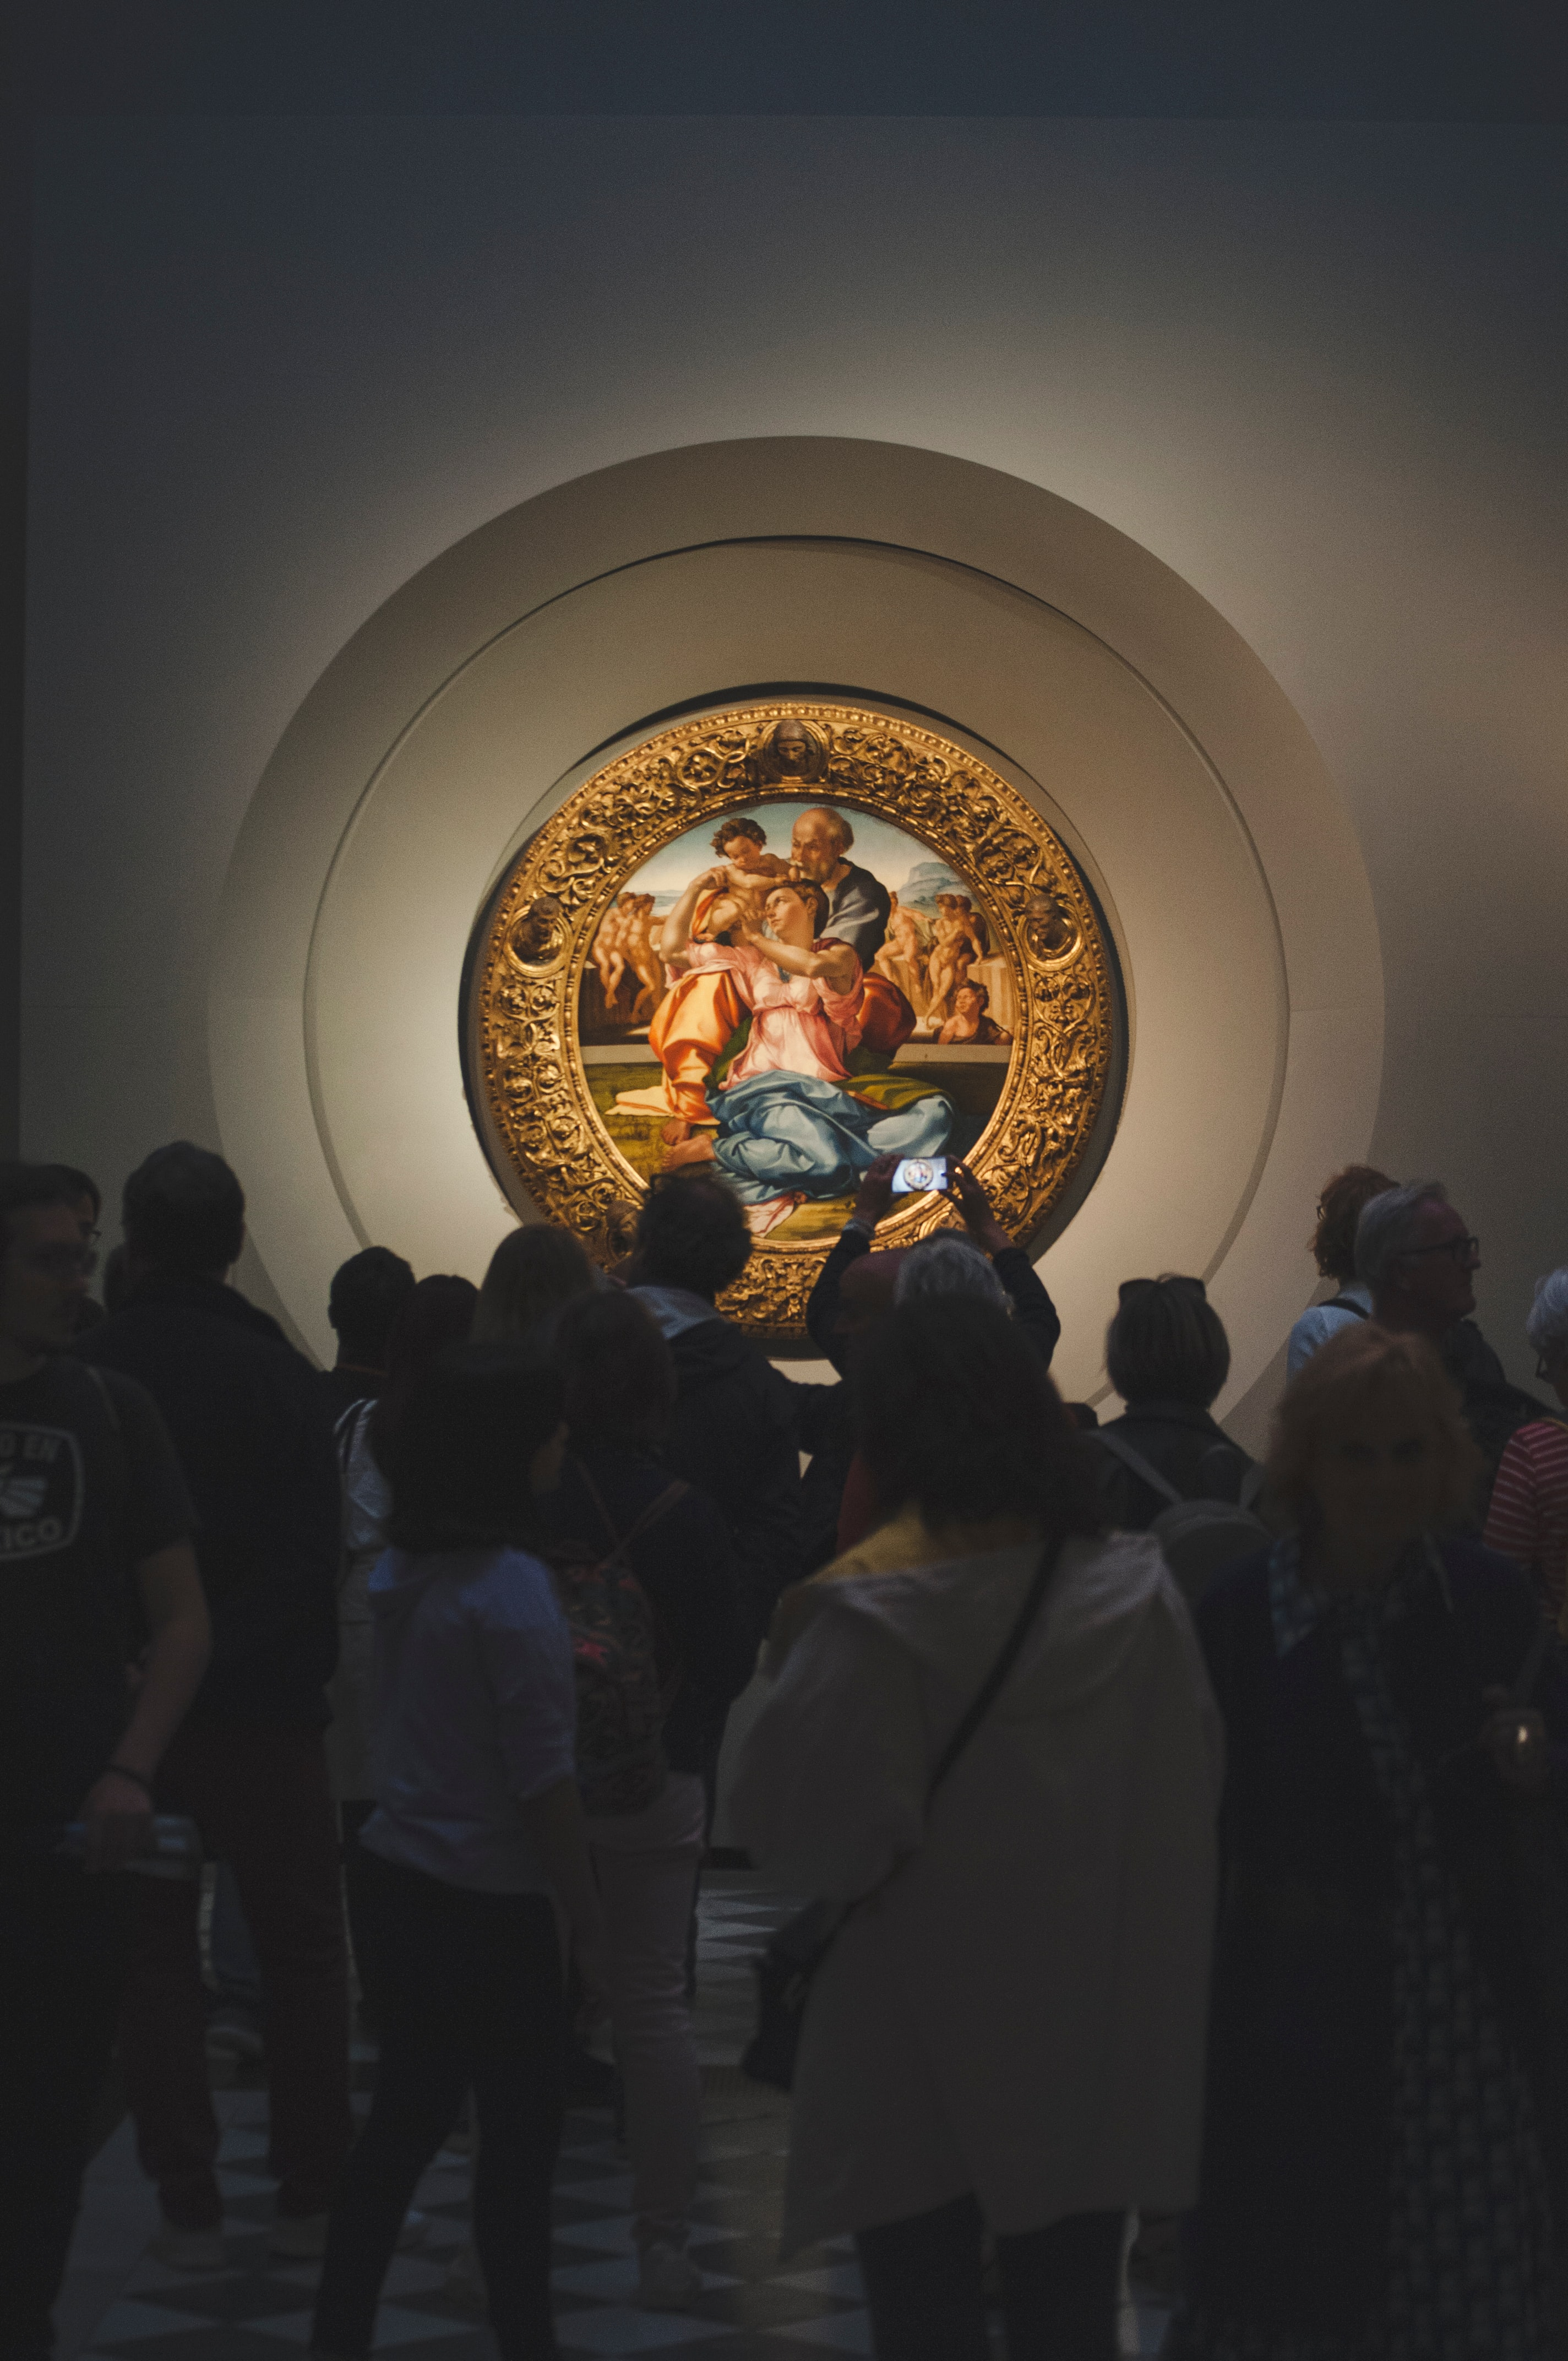 Uffizi Gallery Must-See Paintings 1